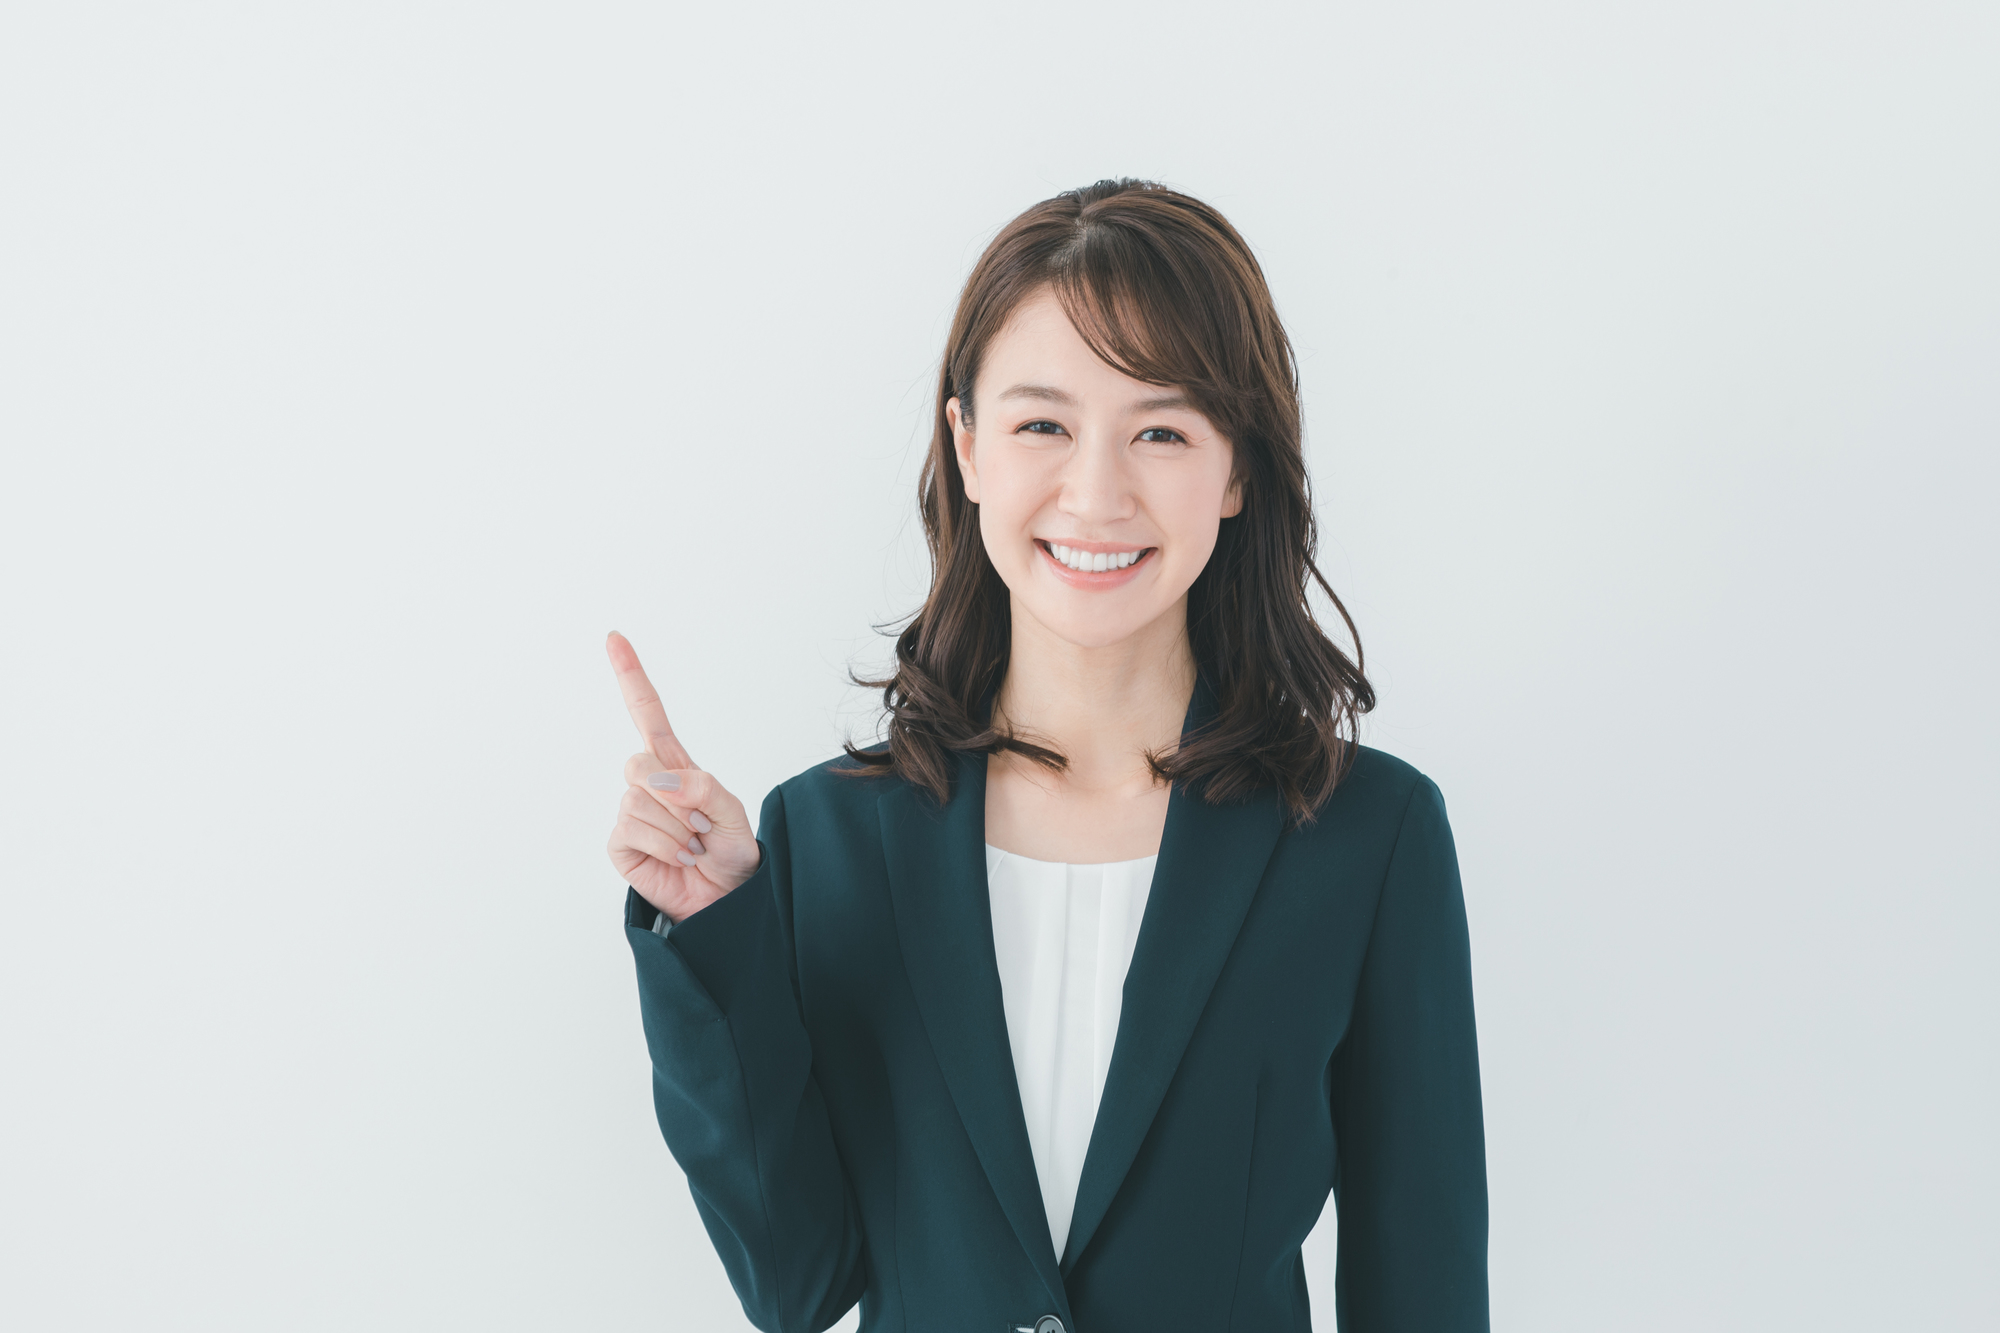 """<span class=""""title"""">社宅管理代行に依頼して社員の満足度を向上させるポイント</span>"""